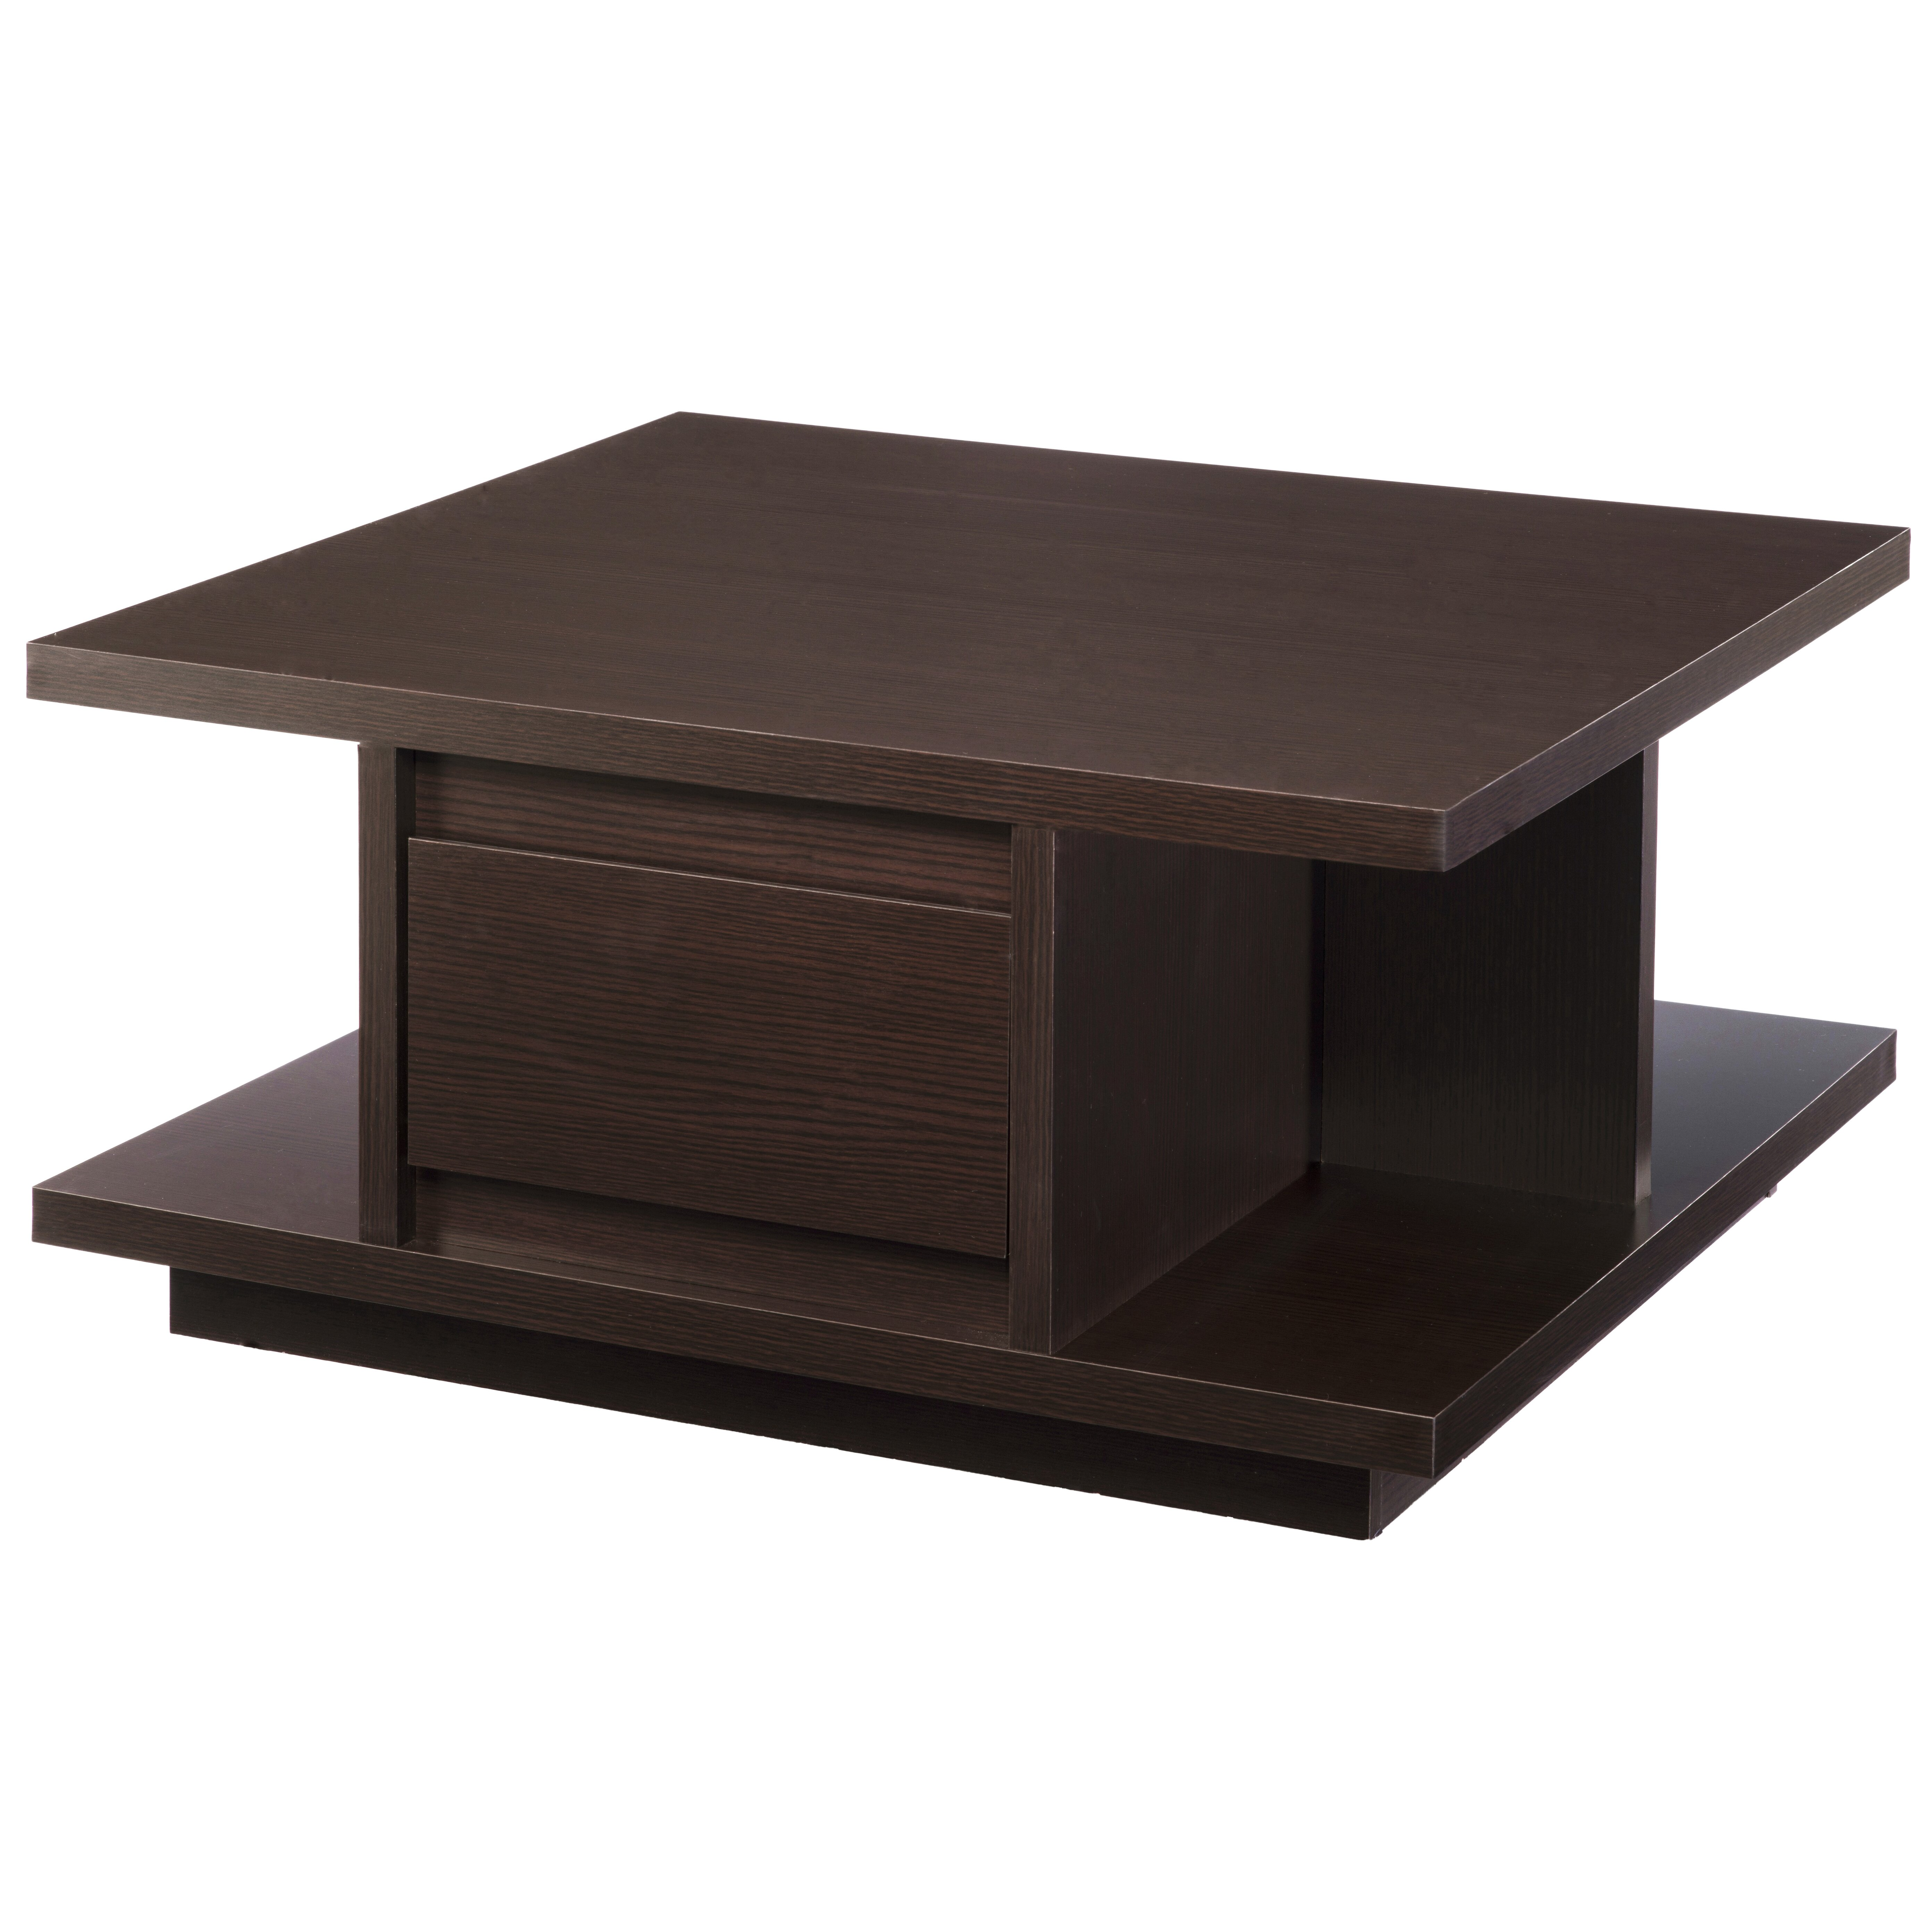 Hokku Designs Karina Coffee Table Reviews Wayfair